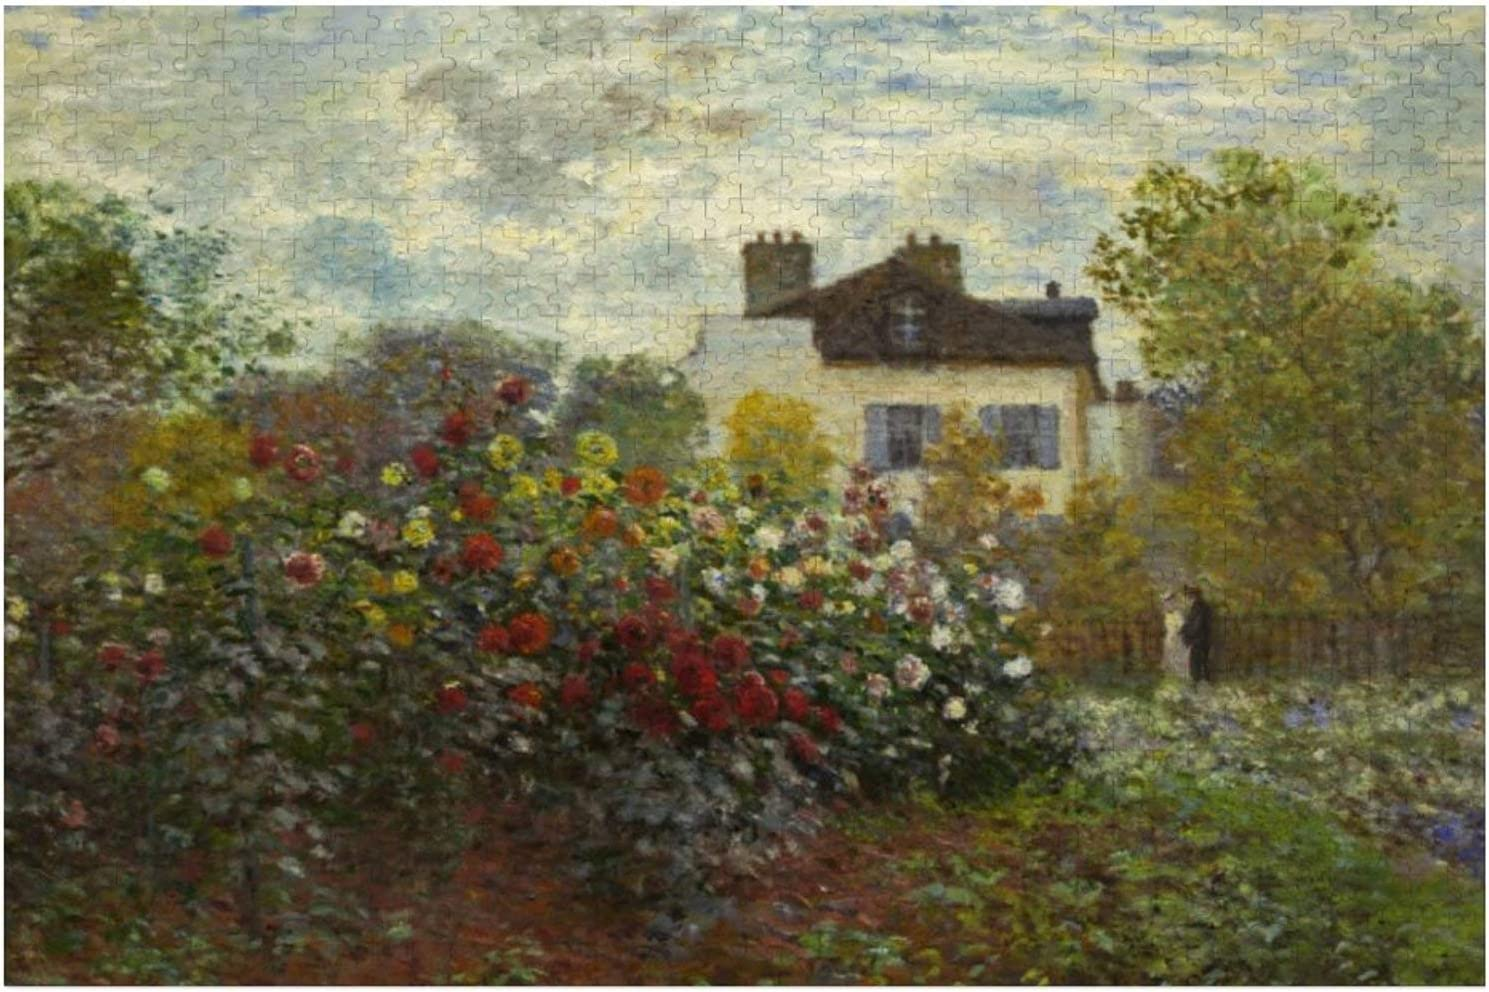 Claude Monet The Artist's Garden in Argenteuil Art Puzzles for Adults, 1000 Piece Kids Jigsaw Puzzles Game Toys Gift for Children Boys and Girls, 20